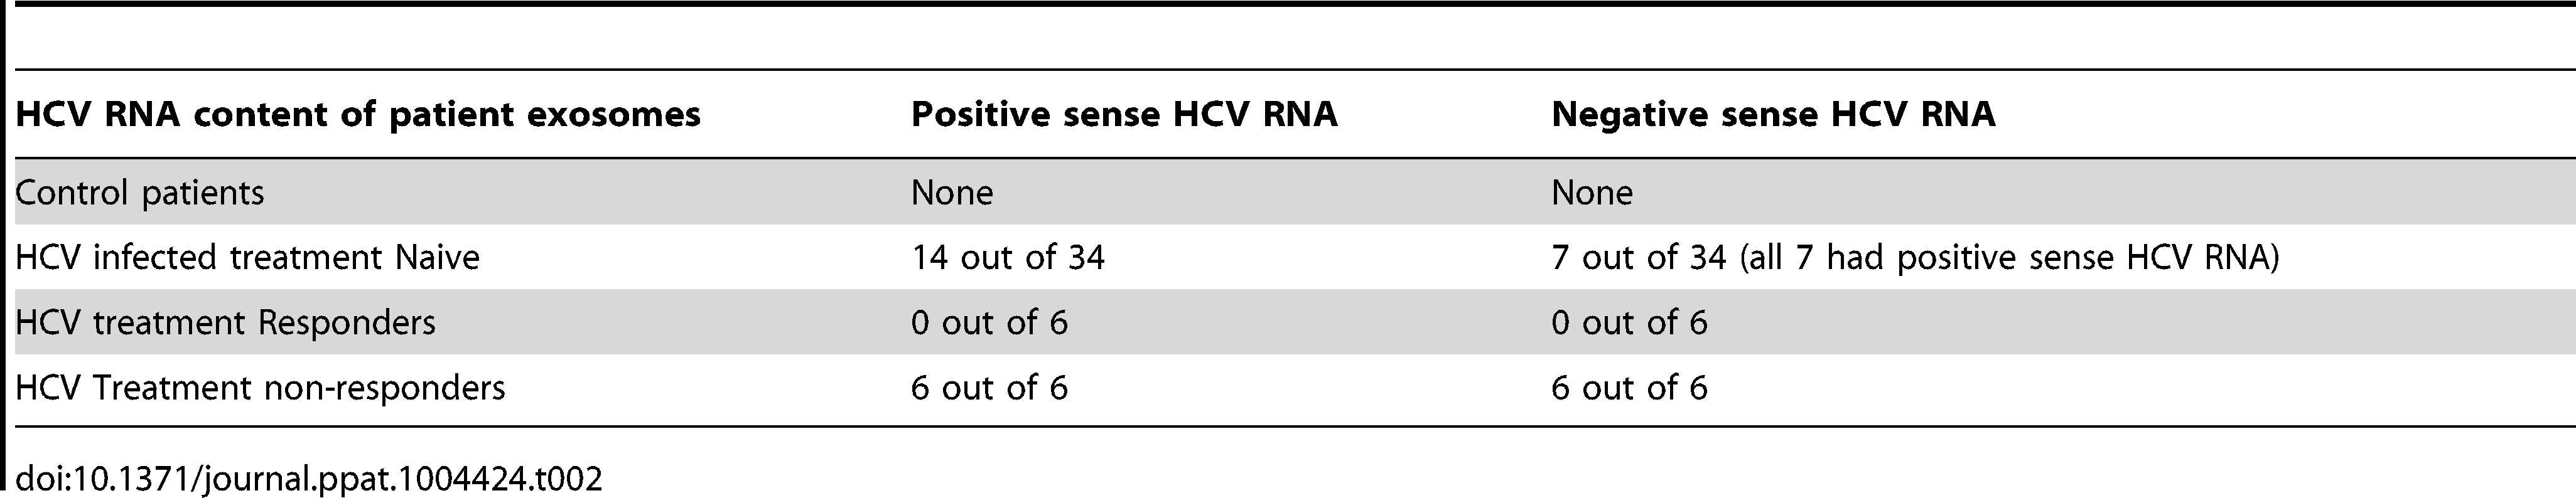 HCV RNA content of patient exosomes.